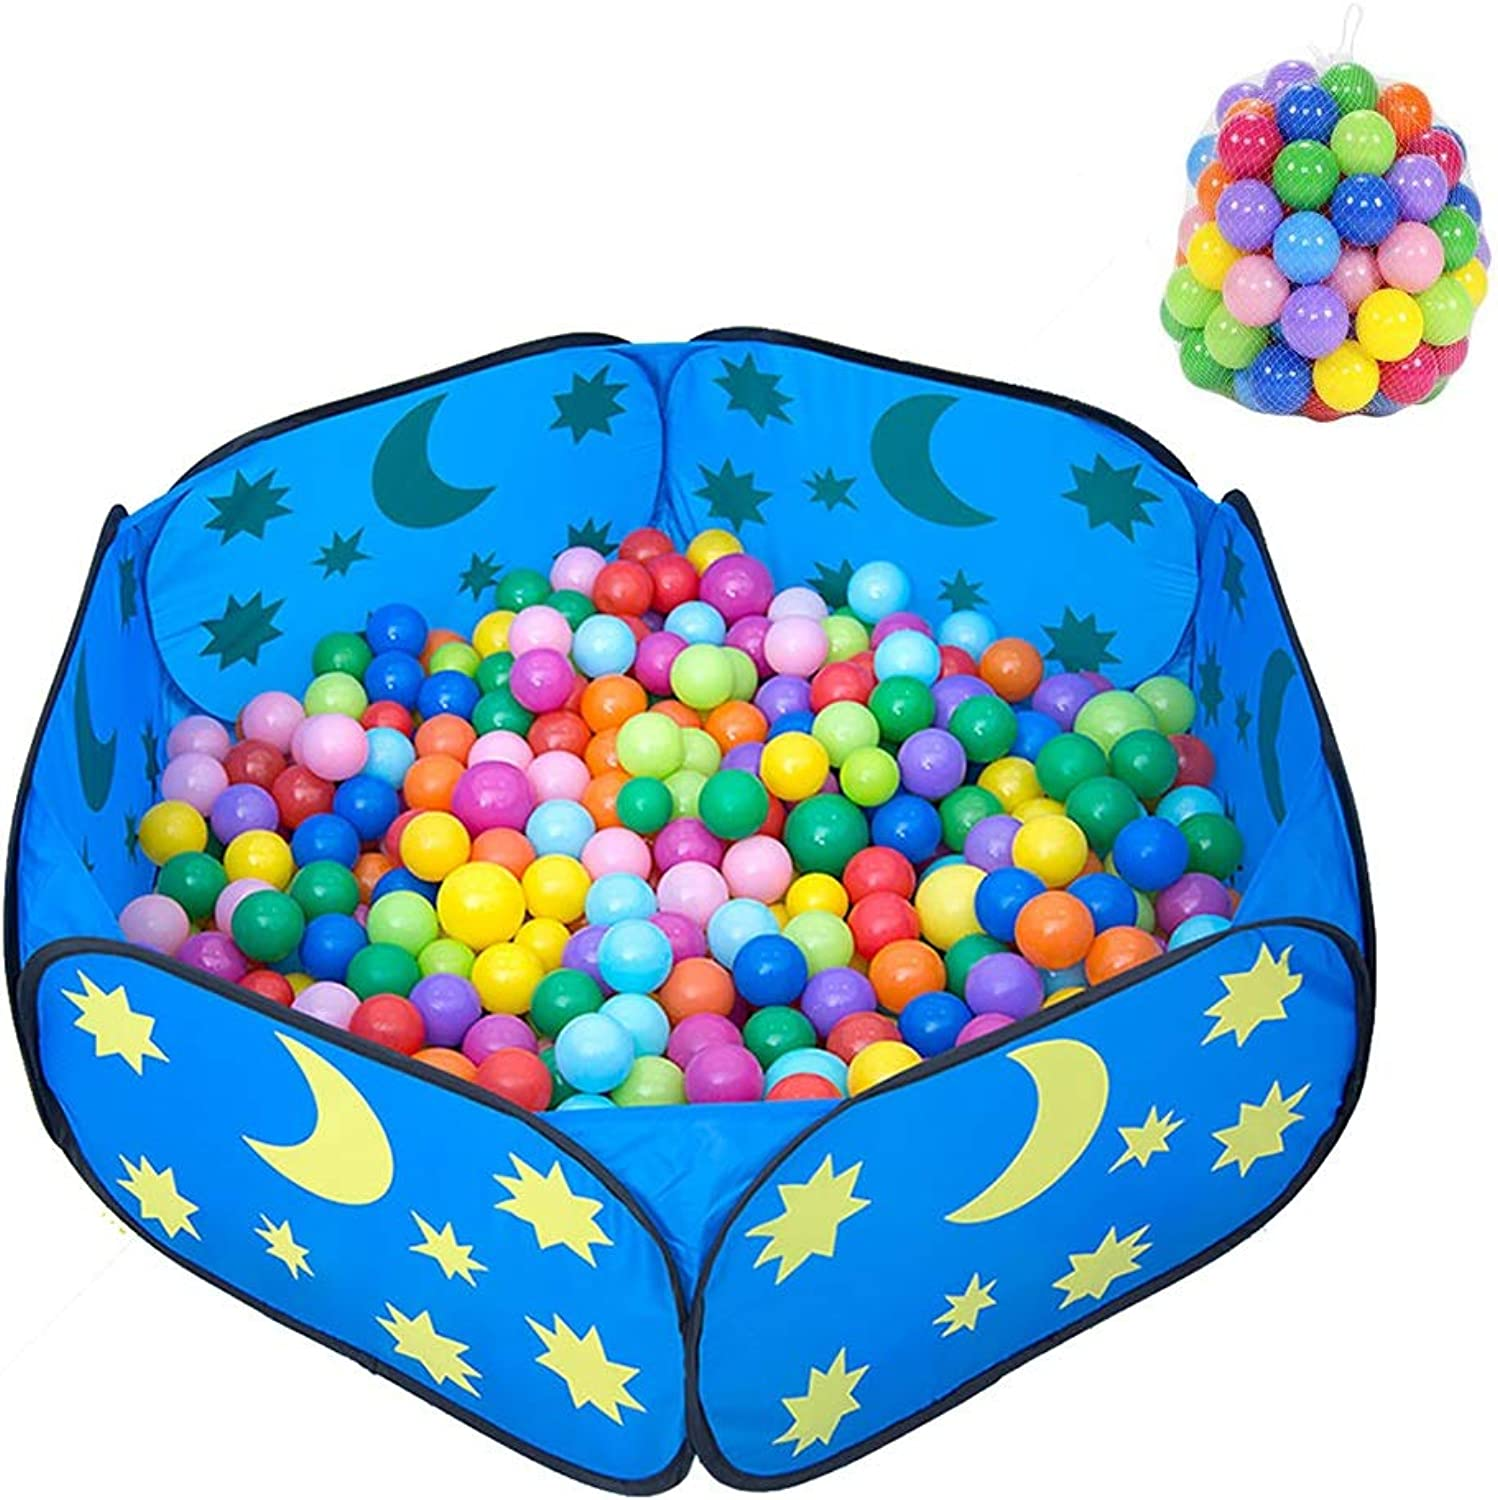 Portable Kids Ball Pit, bluee Baby Play Pit Storage Bag, Ideal for Toddlers Indoor Outdoor Play (color   With 100 balls)